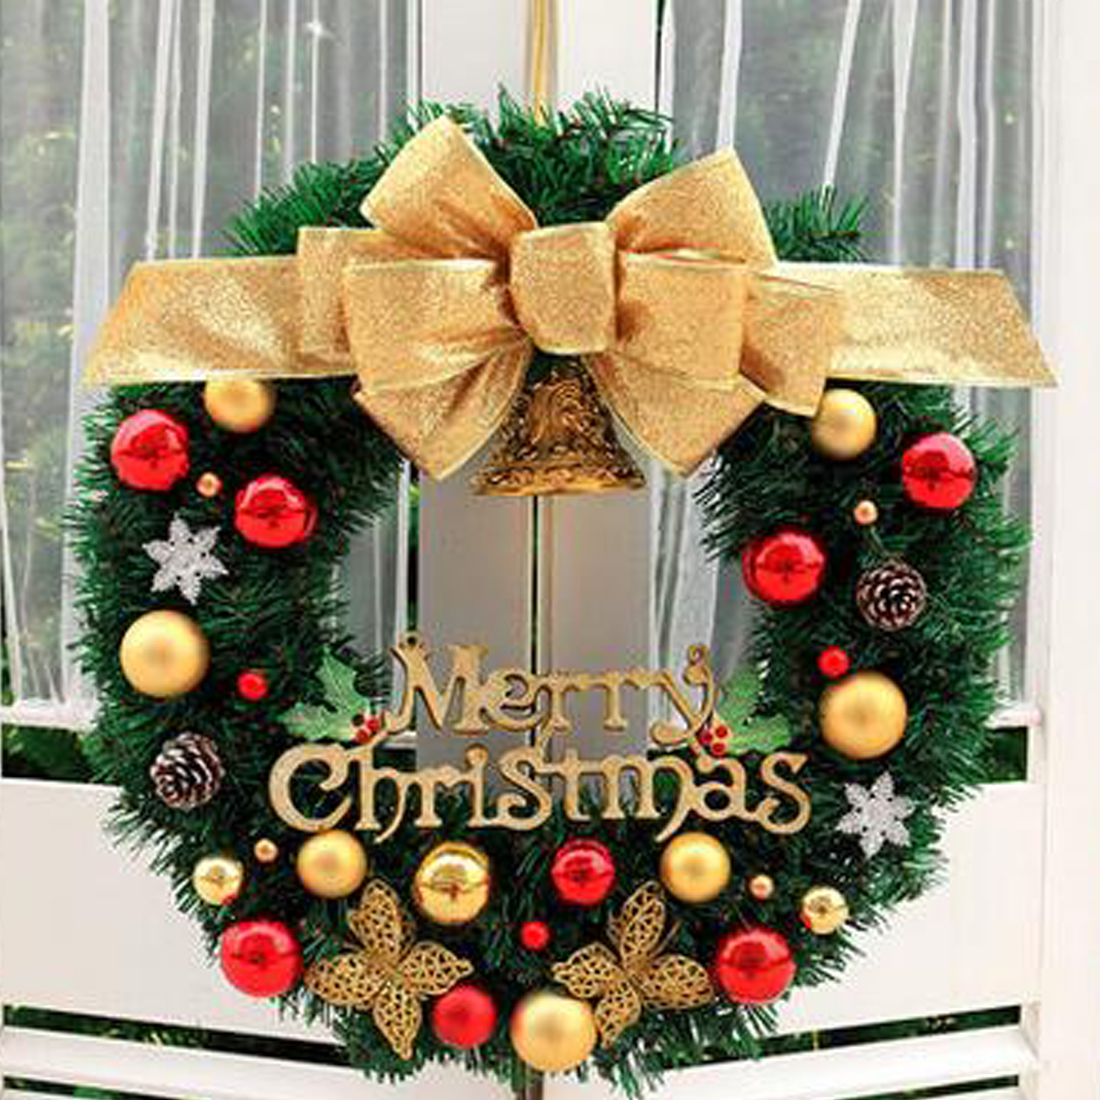 Deko Girlande Weihnachten Weihnachten Große Kranz Tür Wand Ornament Weihnachten Girlande Dekoration Bowknot Jingle Glocke Weihnachten Anhänger Decor